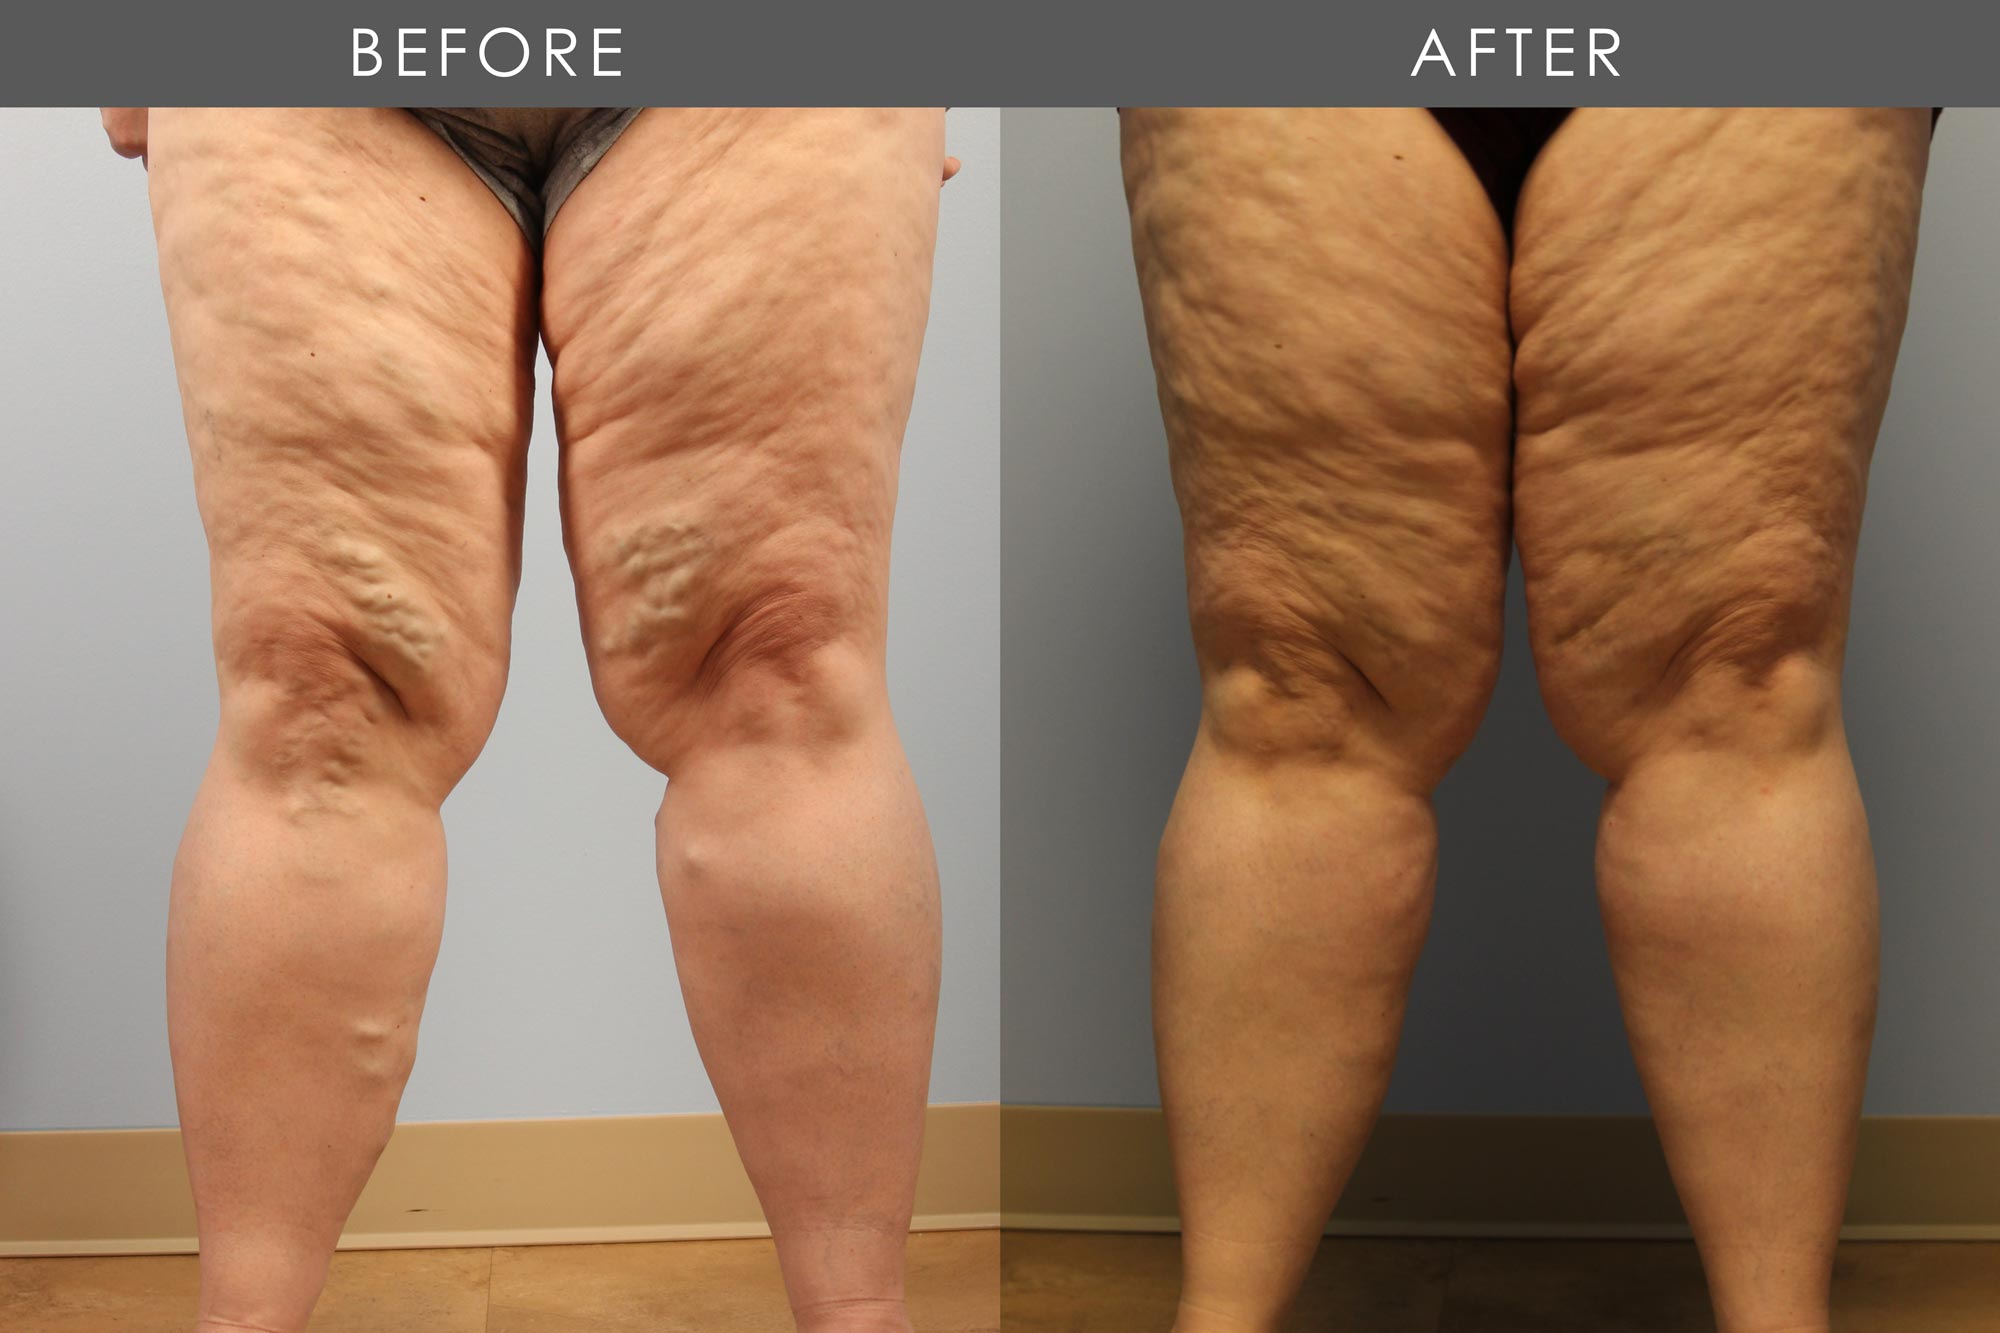 Allure Medical - Varicose Veins - Before & After Treatment